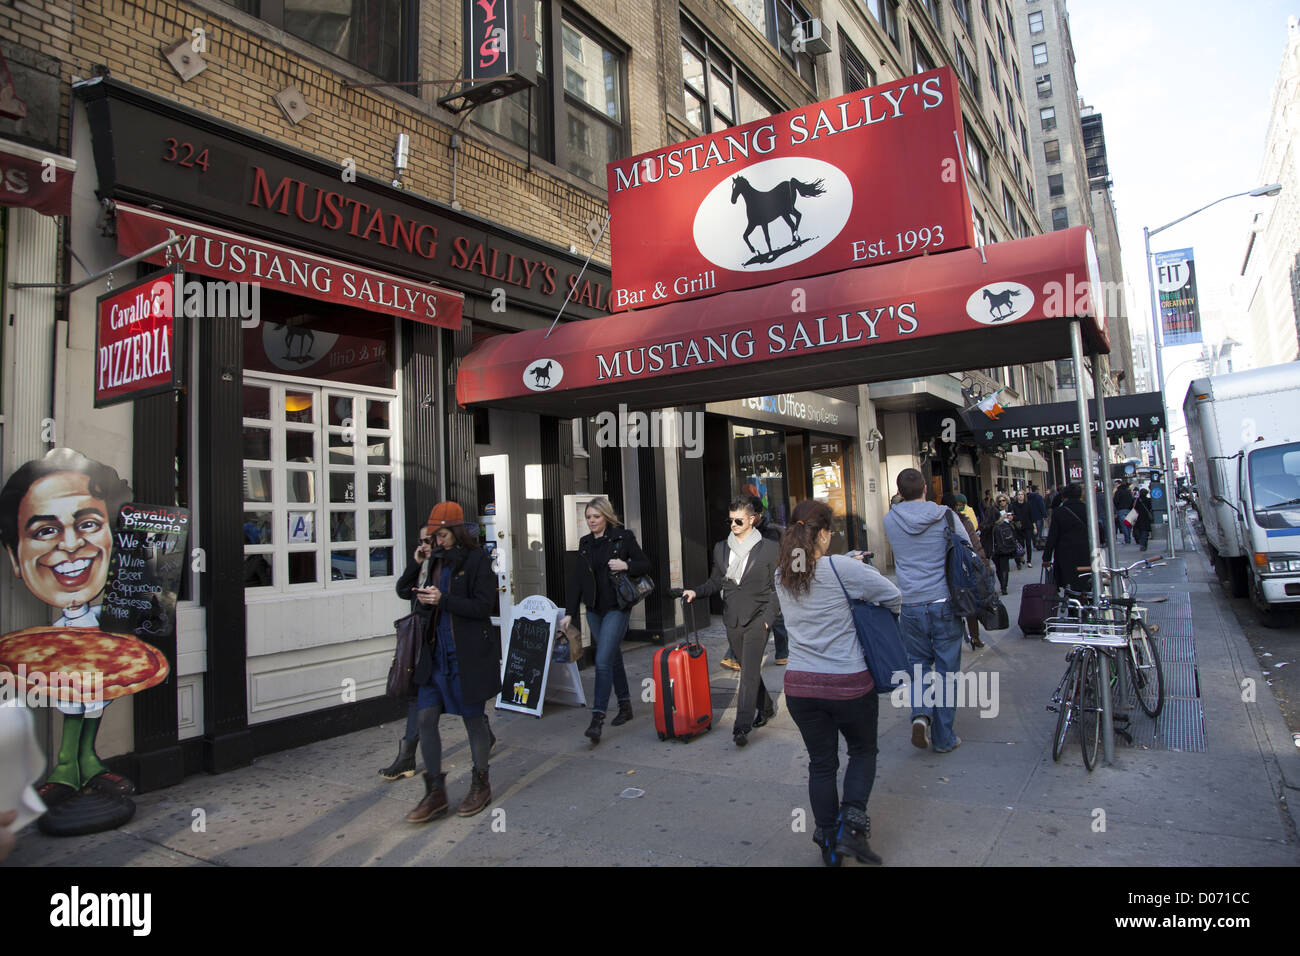 Mustang sally 39 s stock photos mustang sally 39 s stock - Restaurant near madison square garden ...